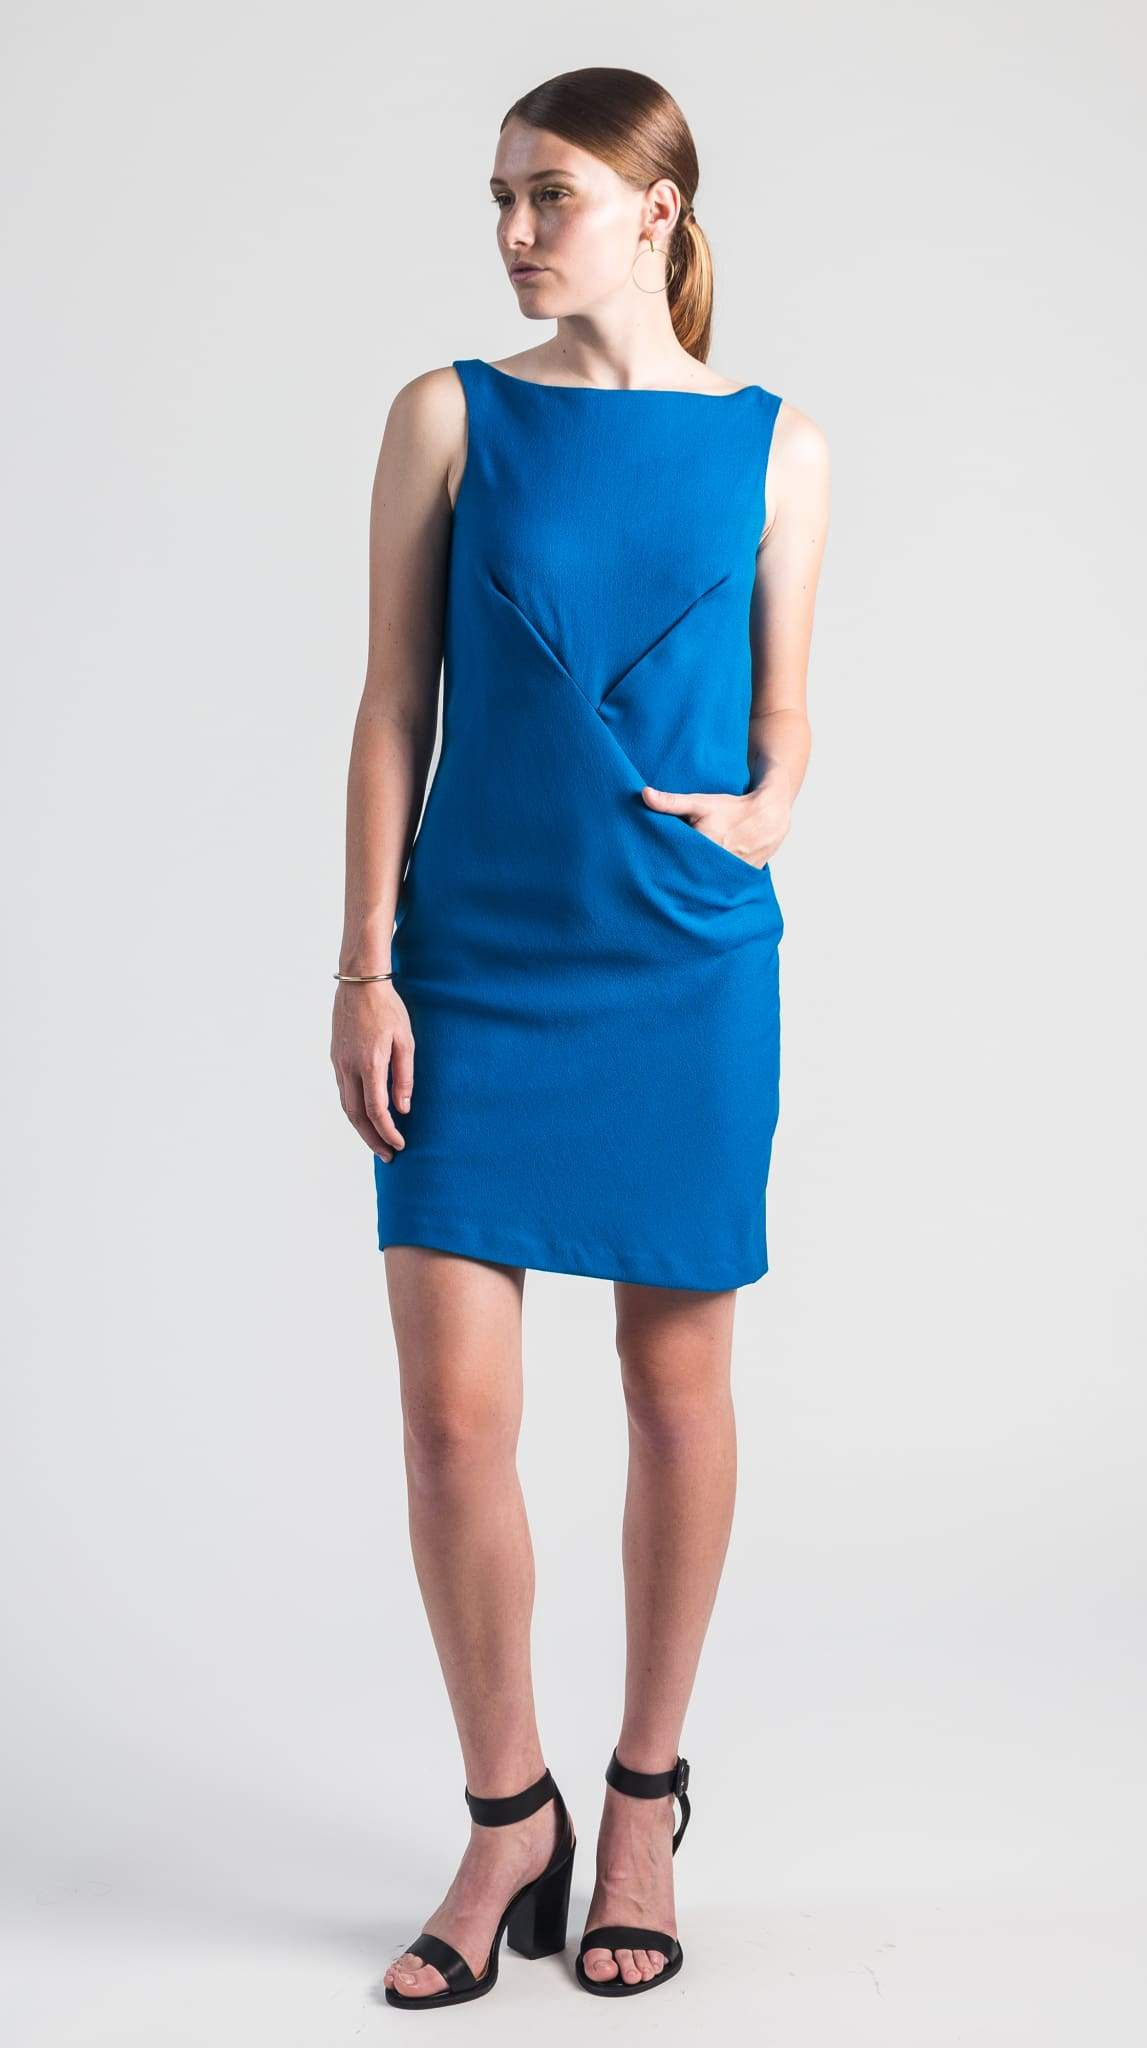 Cerulean blue bias-cut wool crepe sleeveless shift dress hidden pocket front pleats lined in silk by Chicago fashion designer Masha Titievsky of VARYFORM.